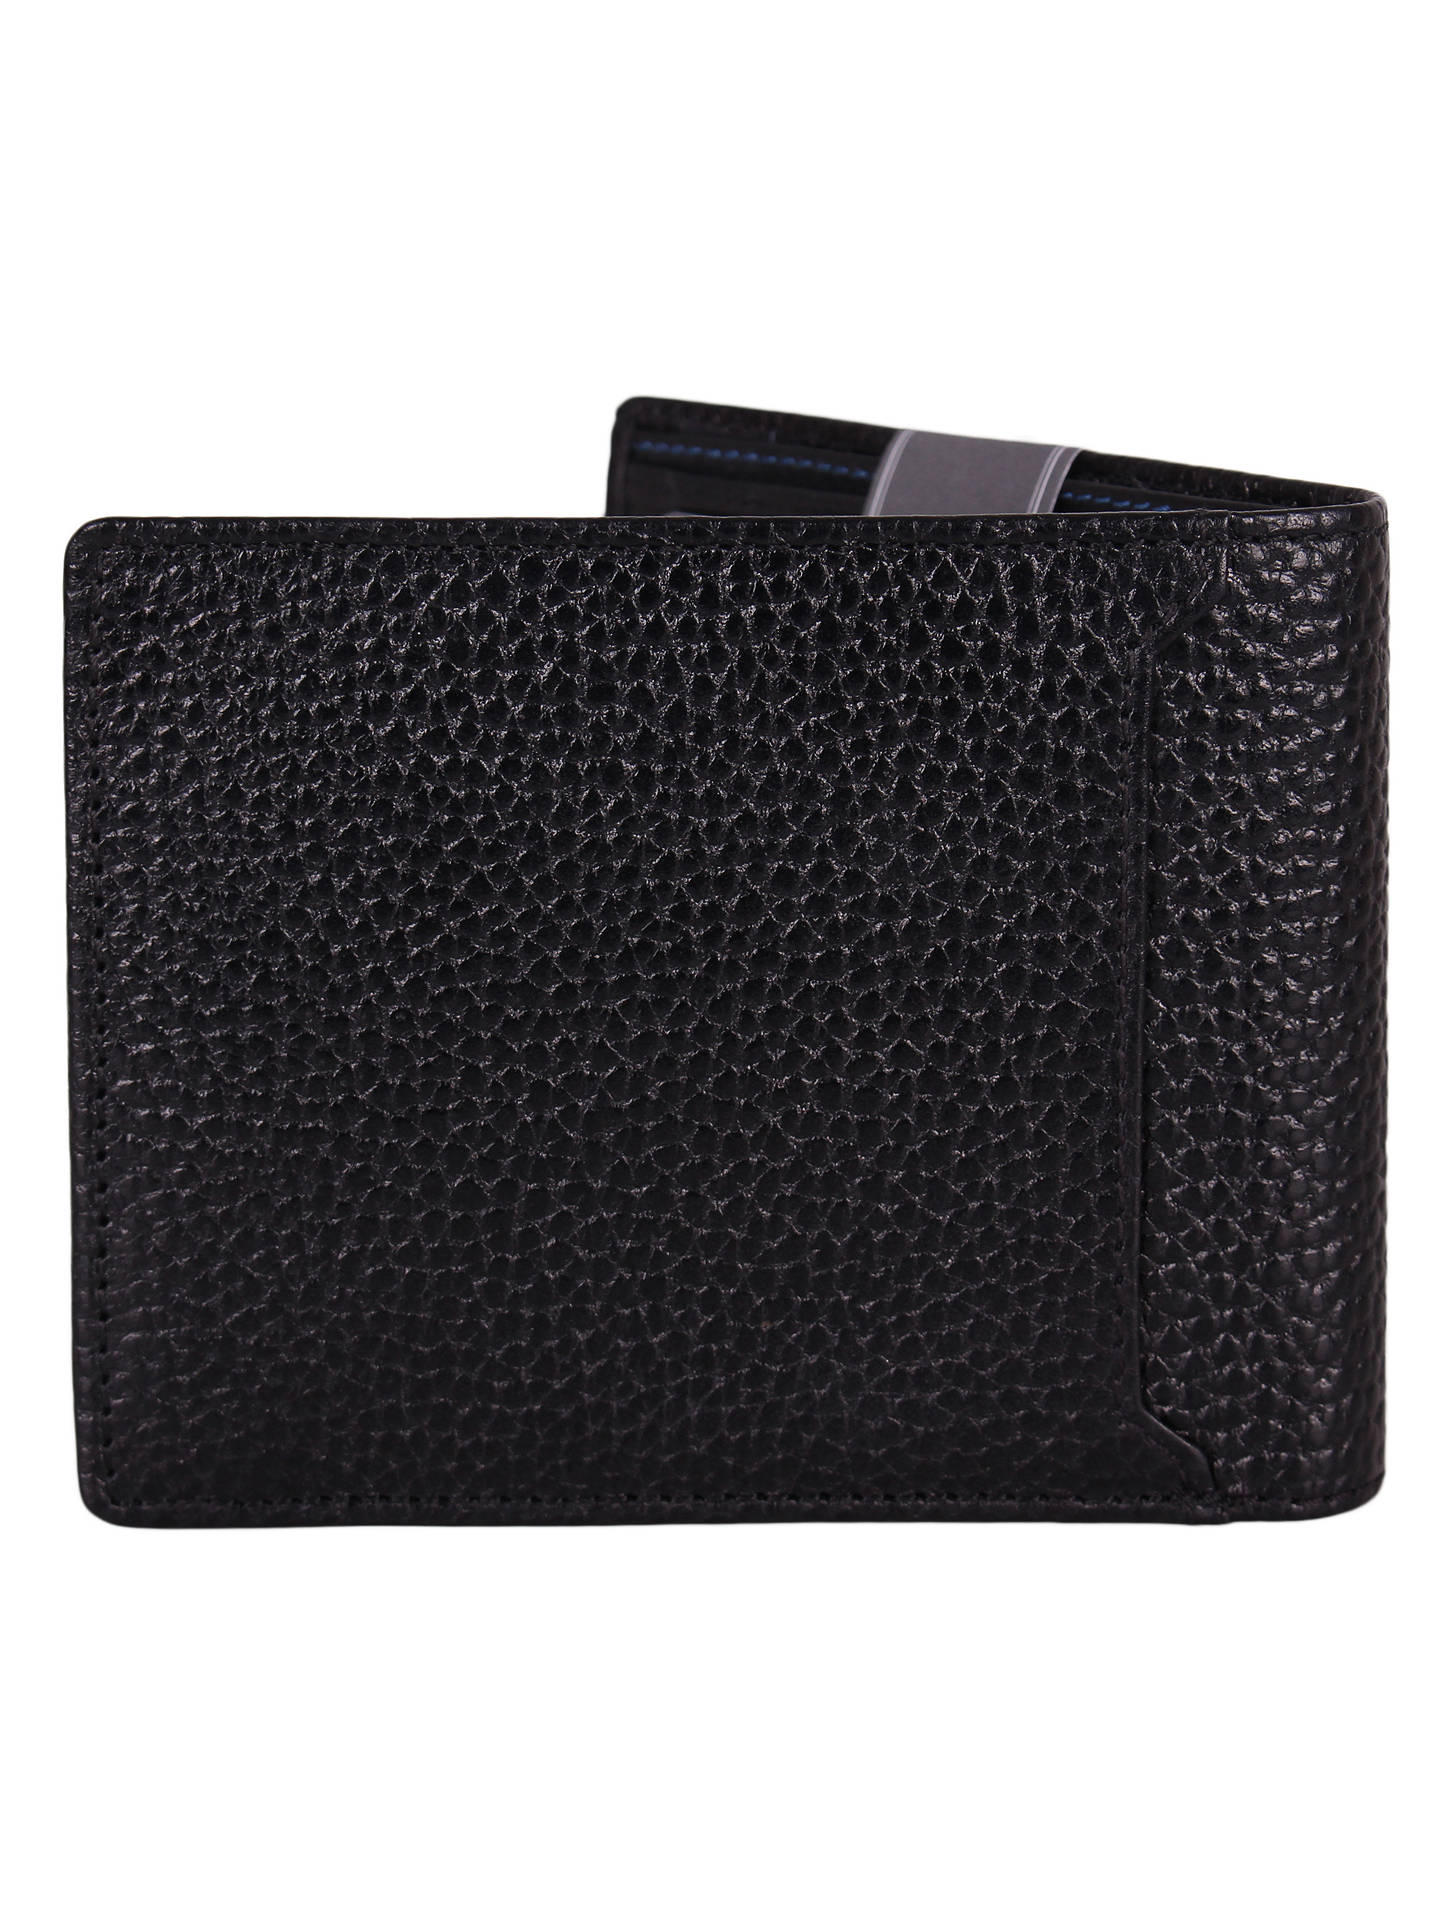 aa6a765c2d2b John Lewis & Partners RFID Blocking Leather Coin Wallet, Black